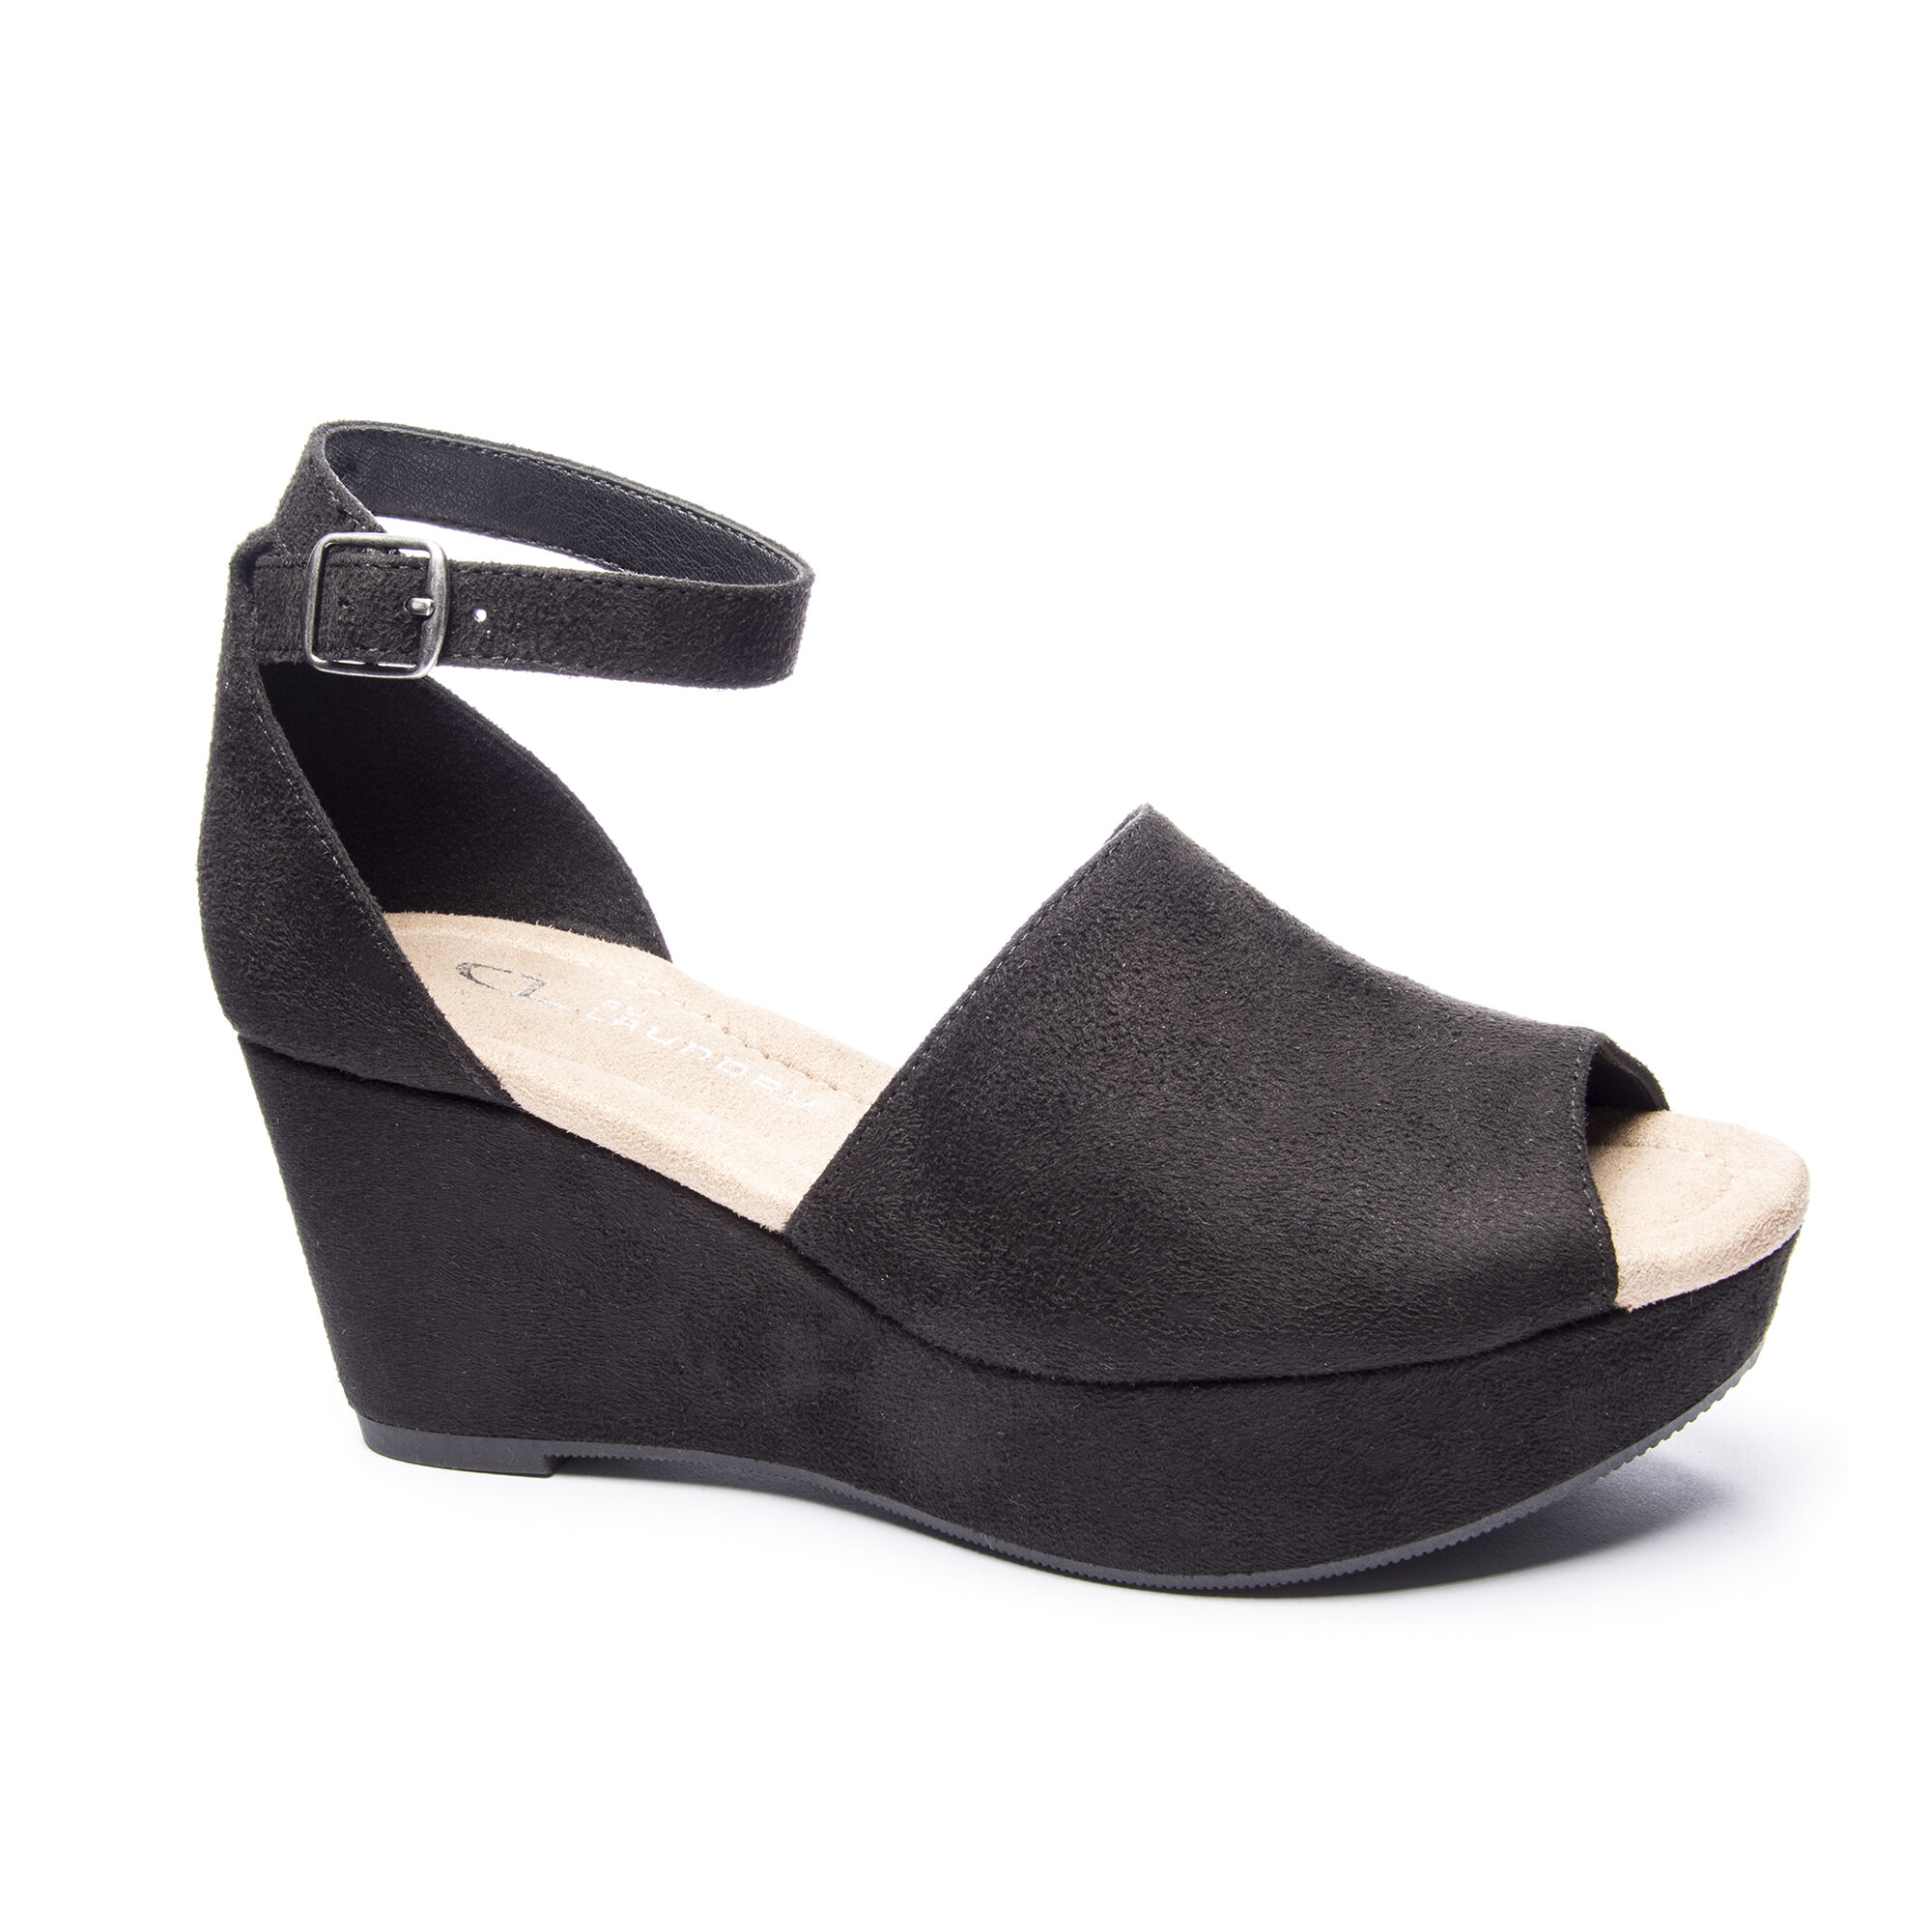 CL by Laundry Dara Wedge low shipping sale online free shipping wide range of shop offer sale online Yoq3Akd8